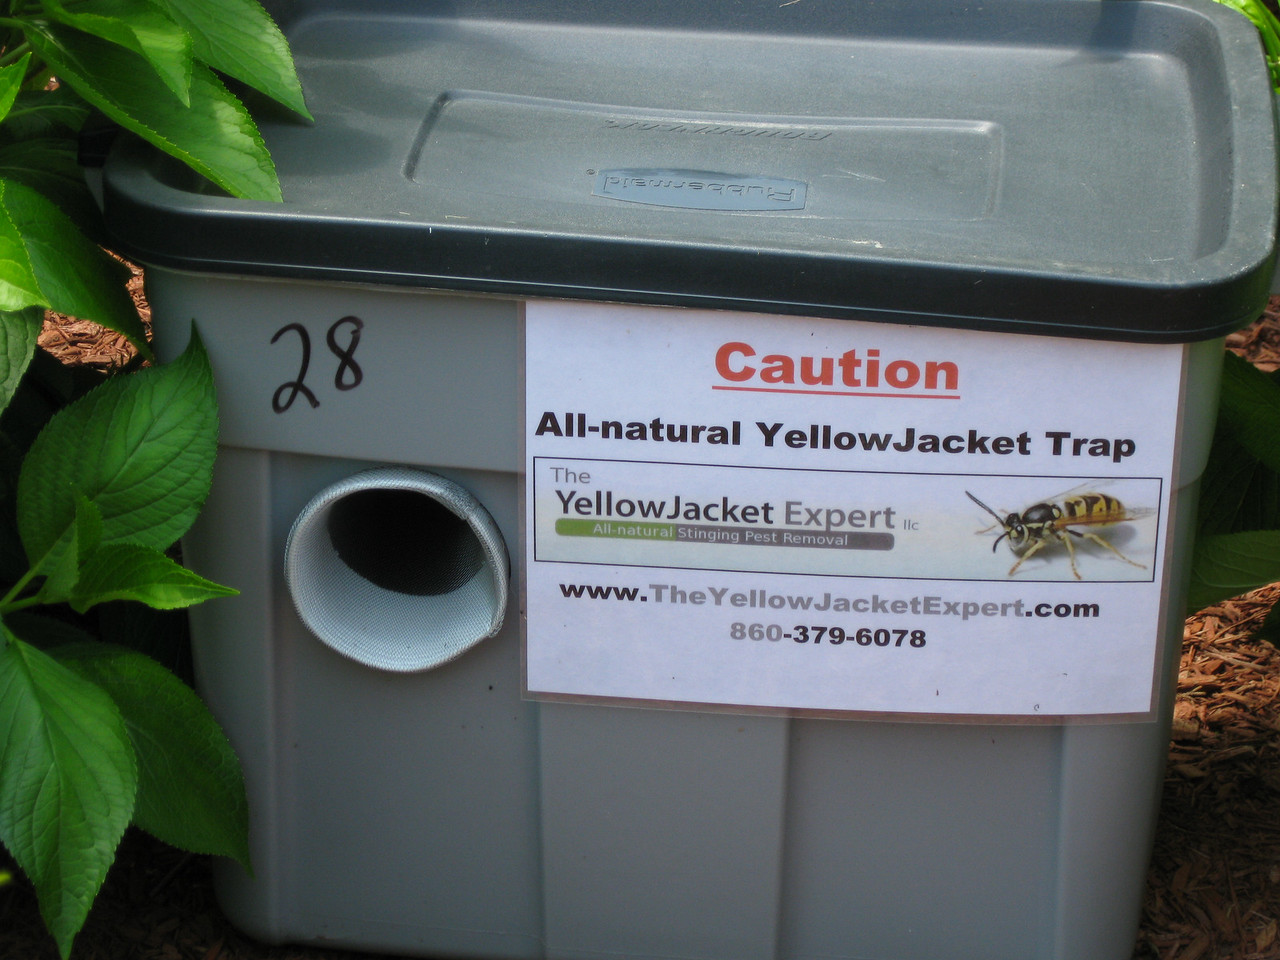 Another yellow jacket trap.